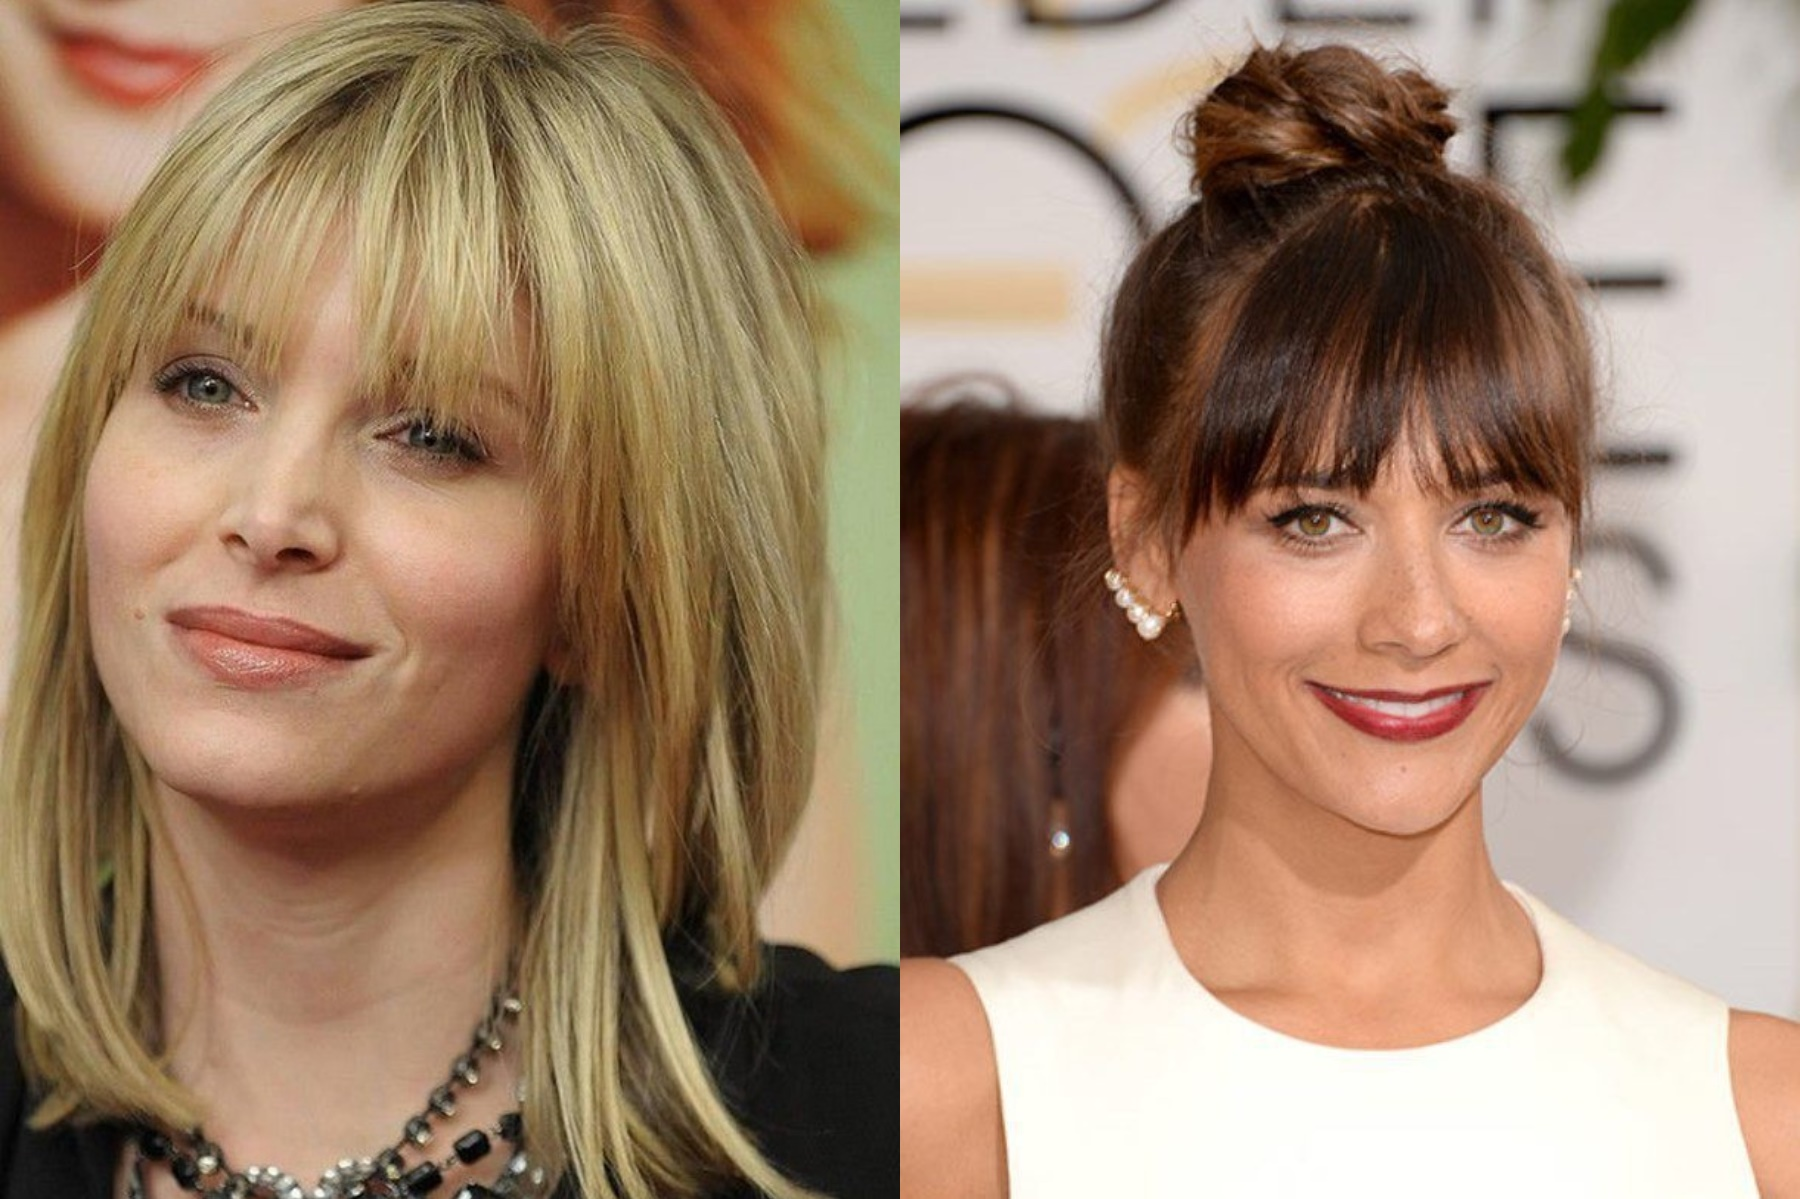 Latest Ragged Bangs 2018 For Women's Hairstyles 5